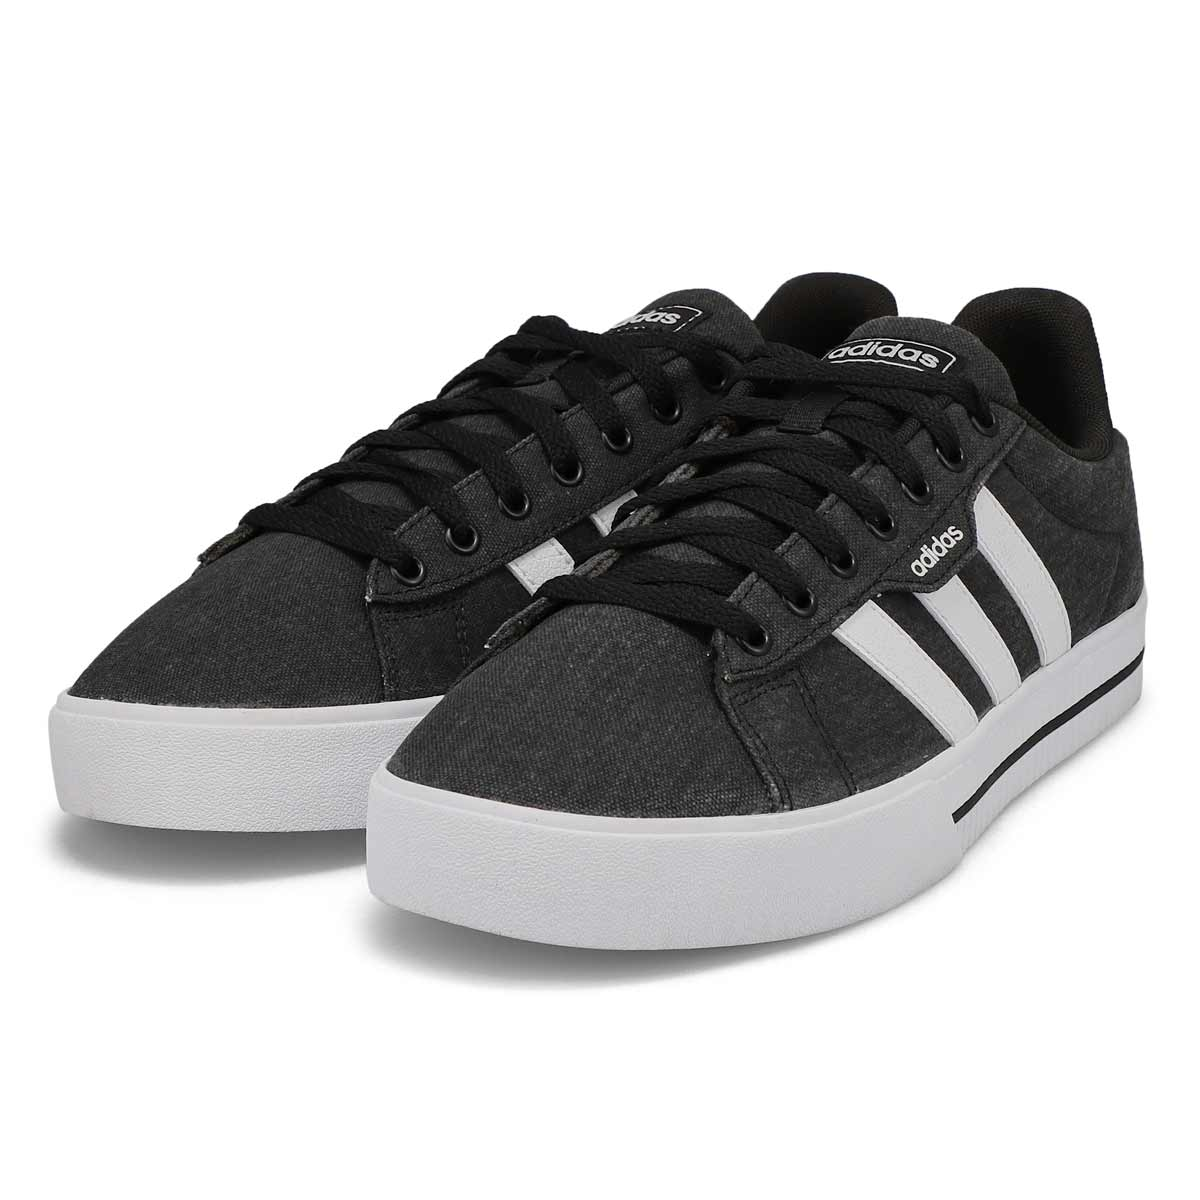 Men's Daily 3.0 Lace Up Sneaker - Black/White